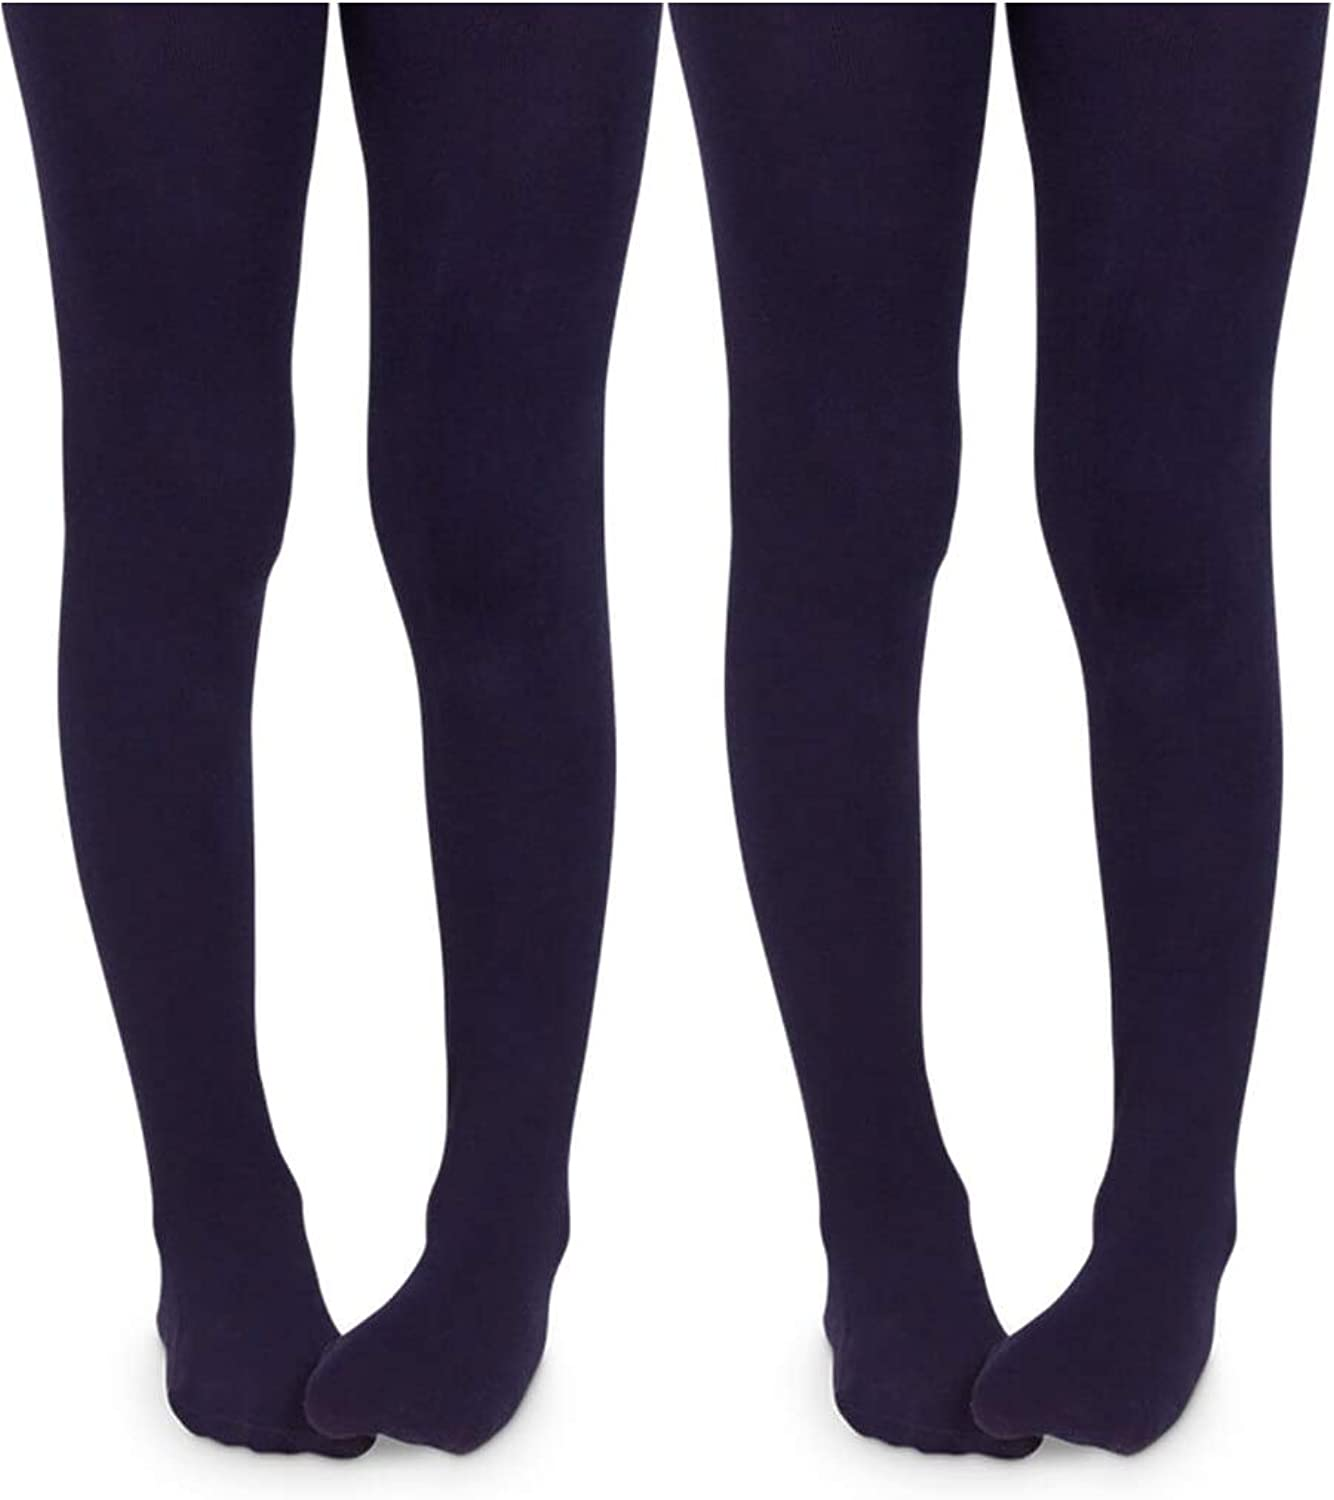 Jefferies National products Cheap sale Socks girls Classic Cotton Pack Pair 2 Tights